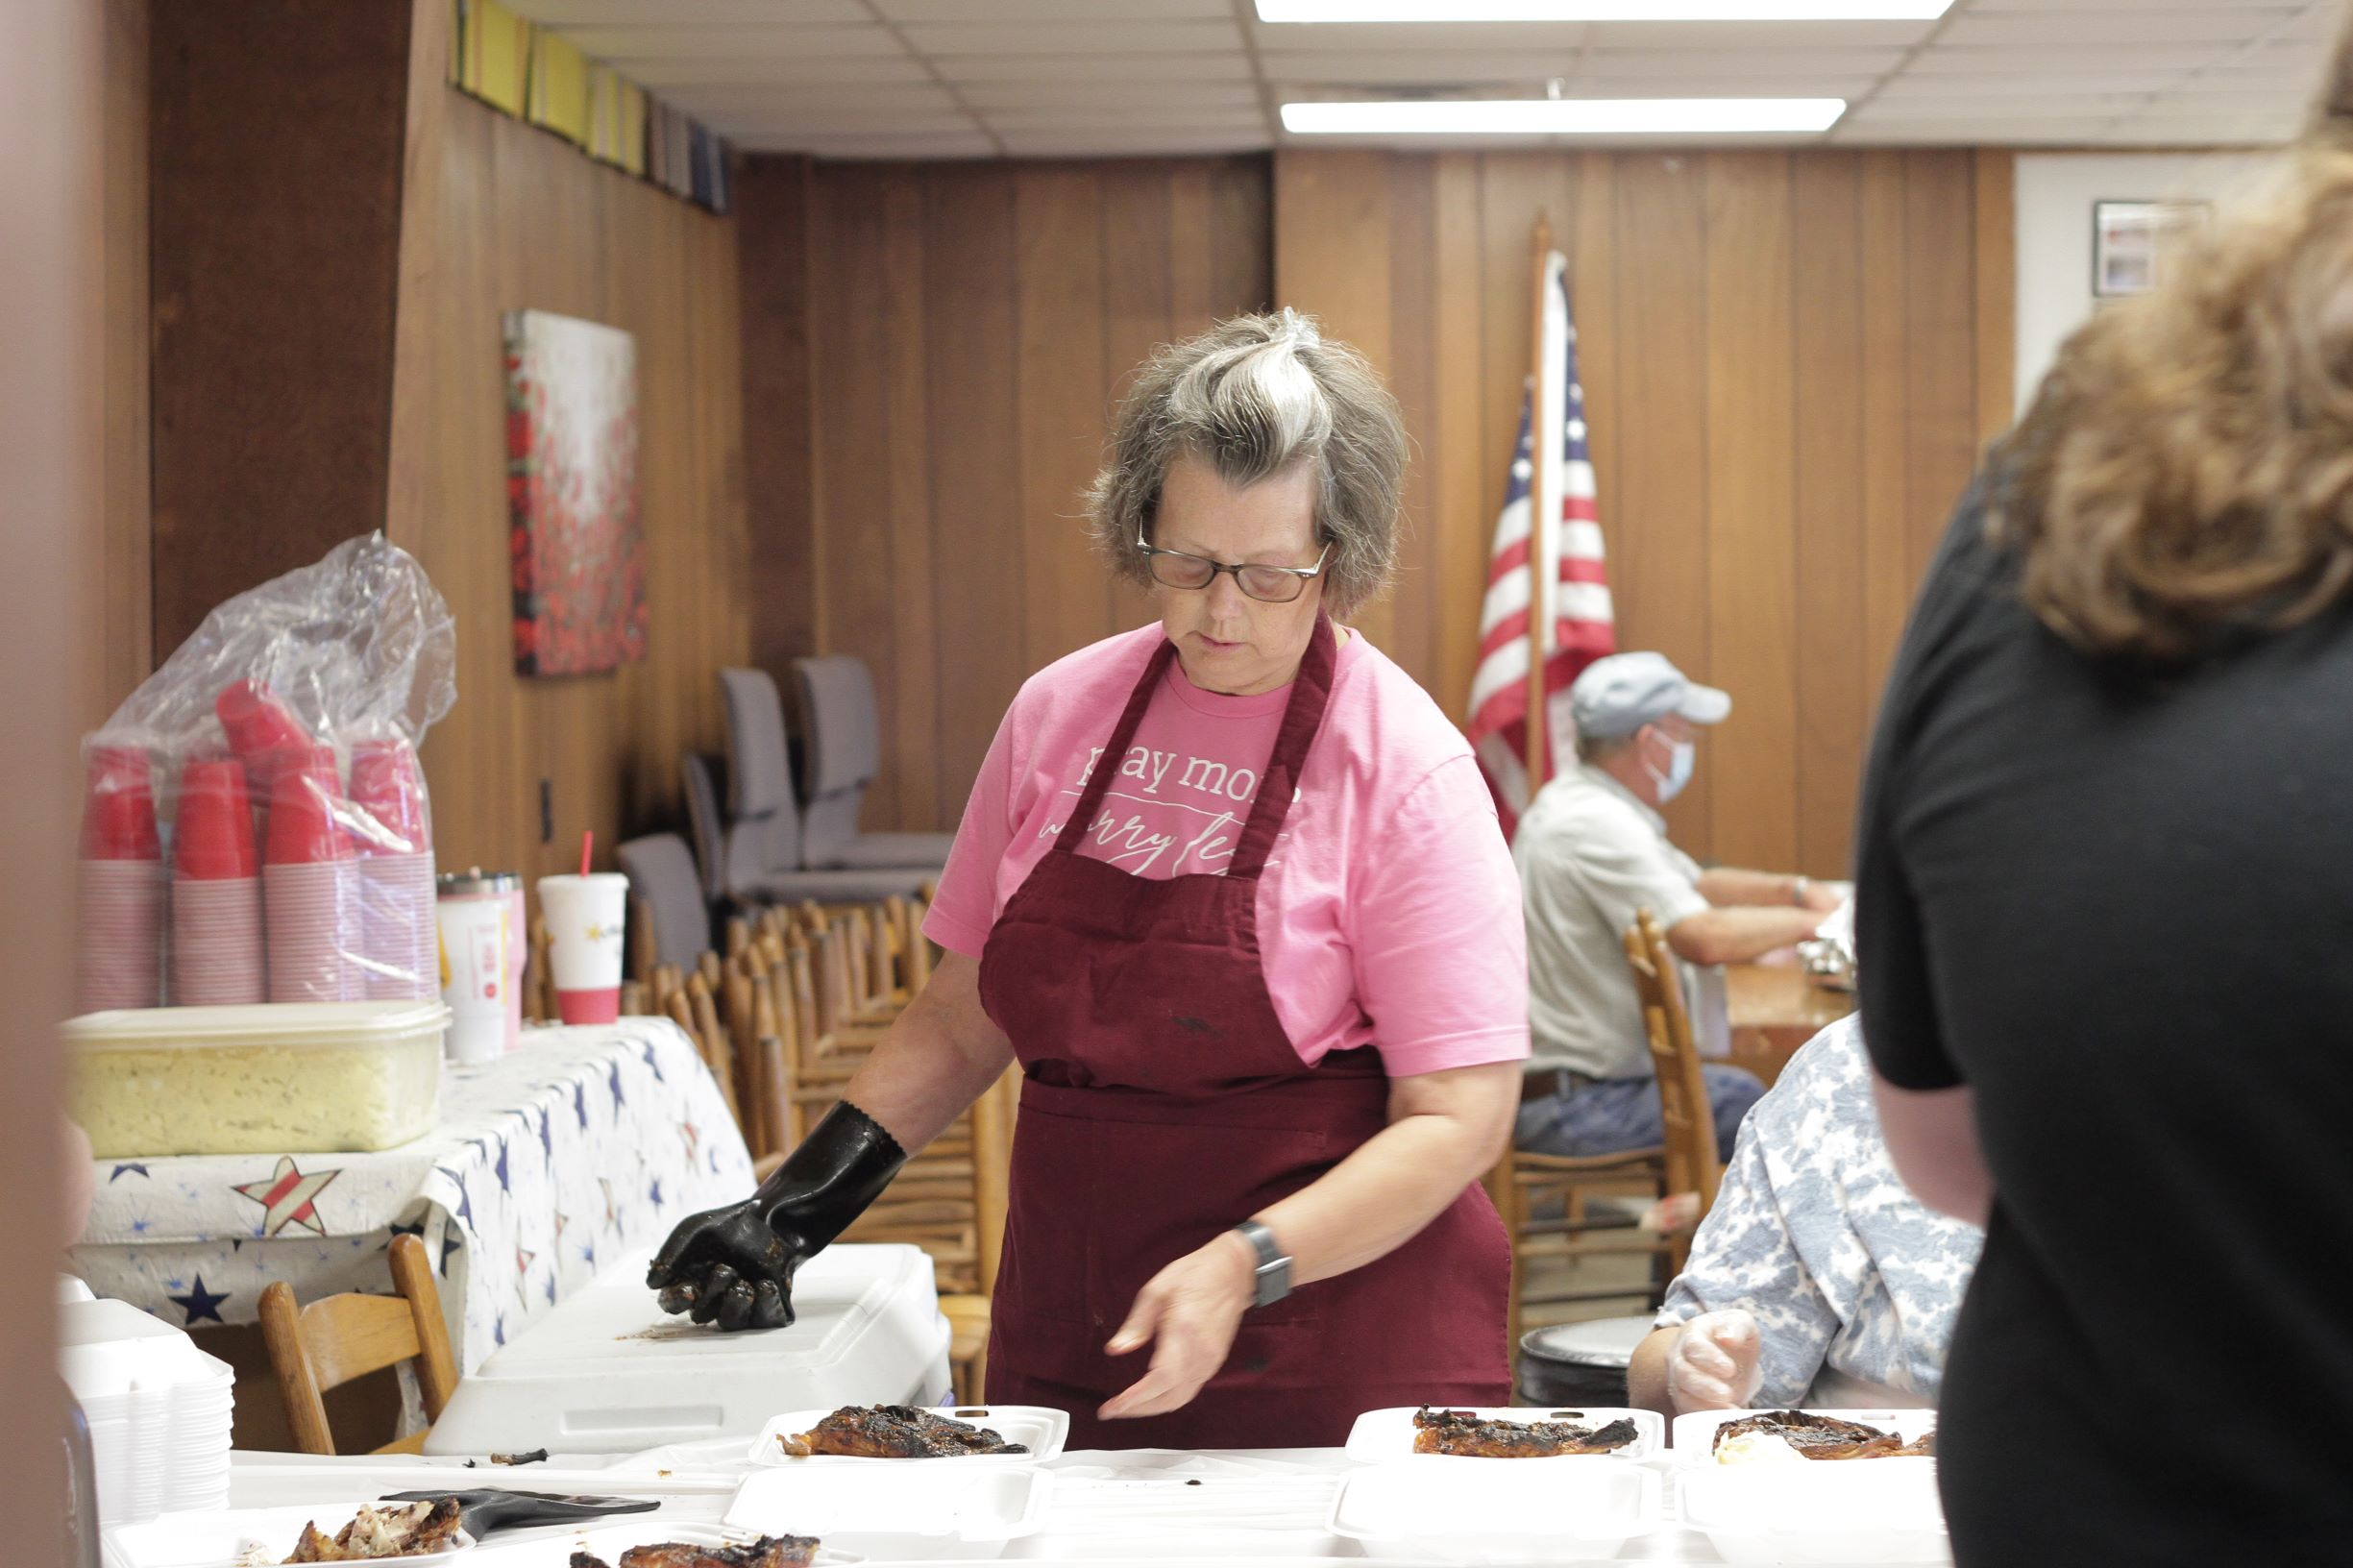 Mount Olive VFW's Fall Barbecue Sale (PHOTO GALLERY)